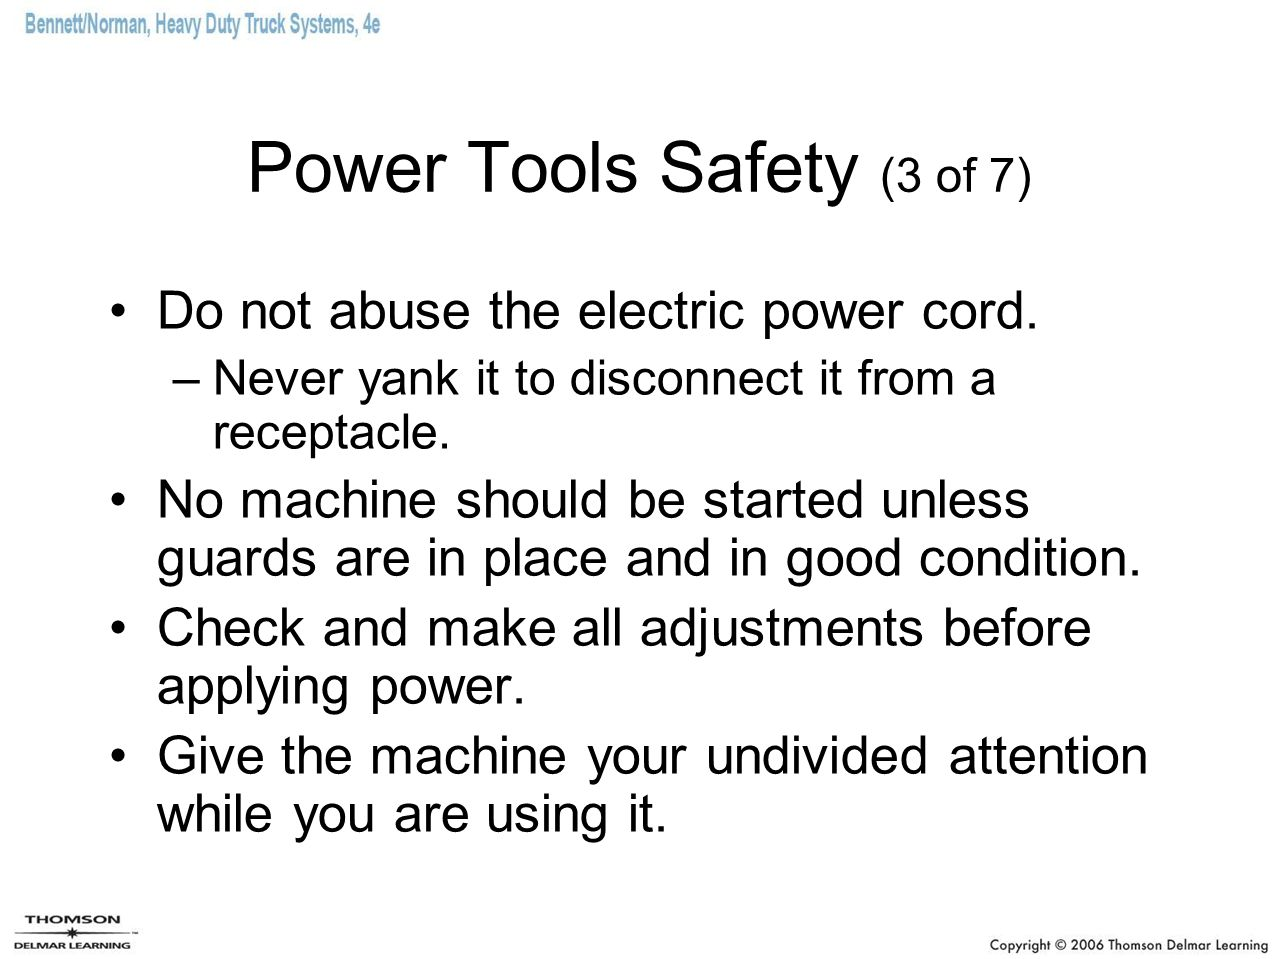 Power Tools Safety (3 of 7)